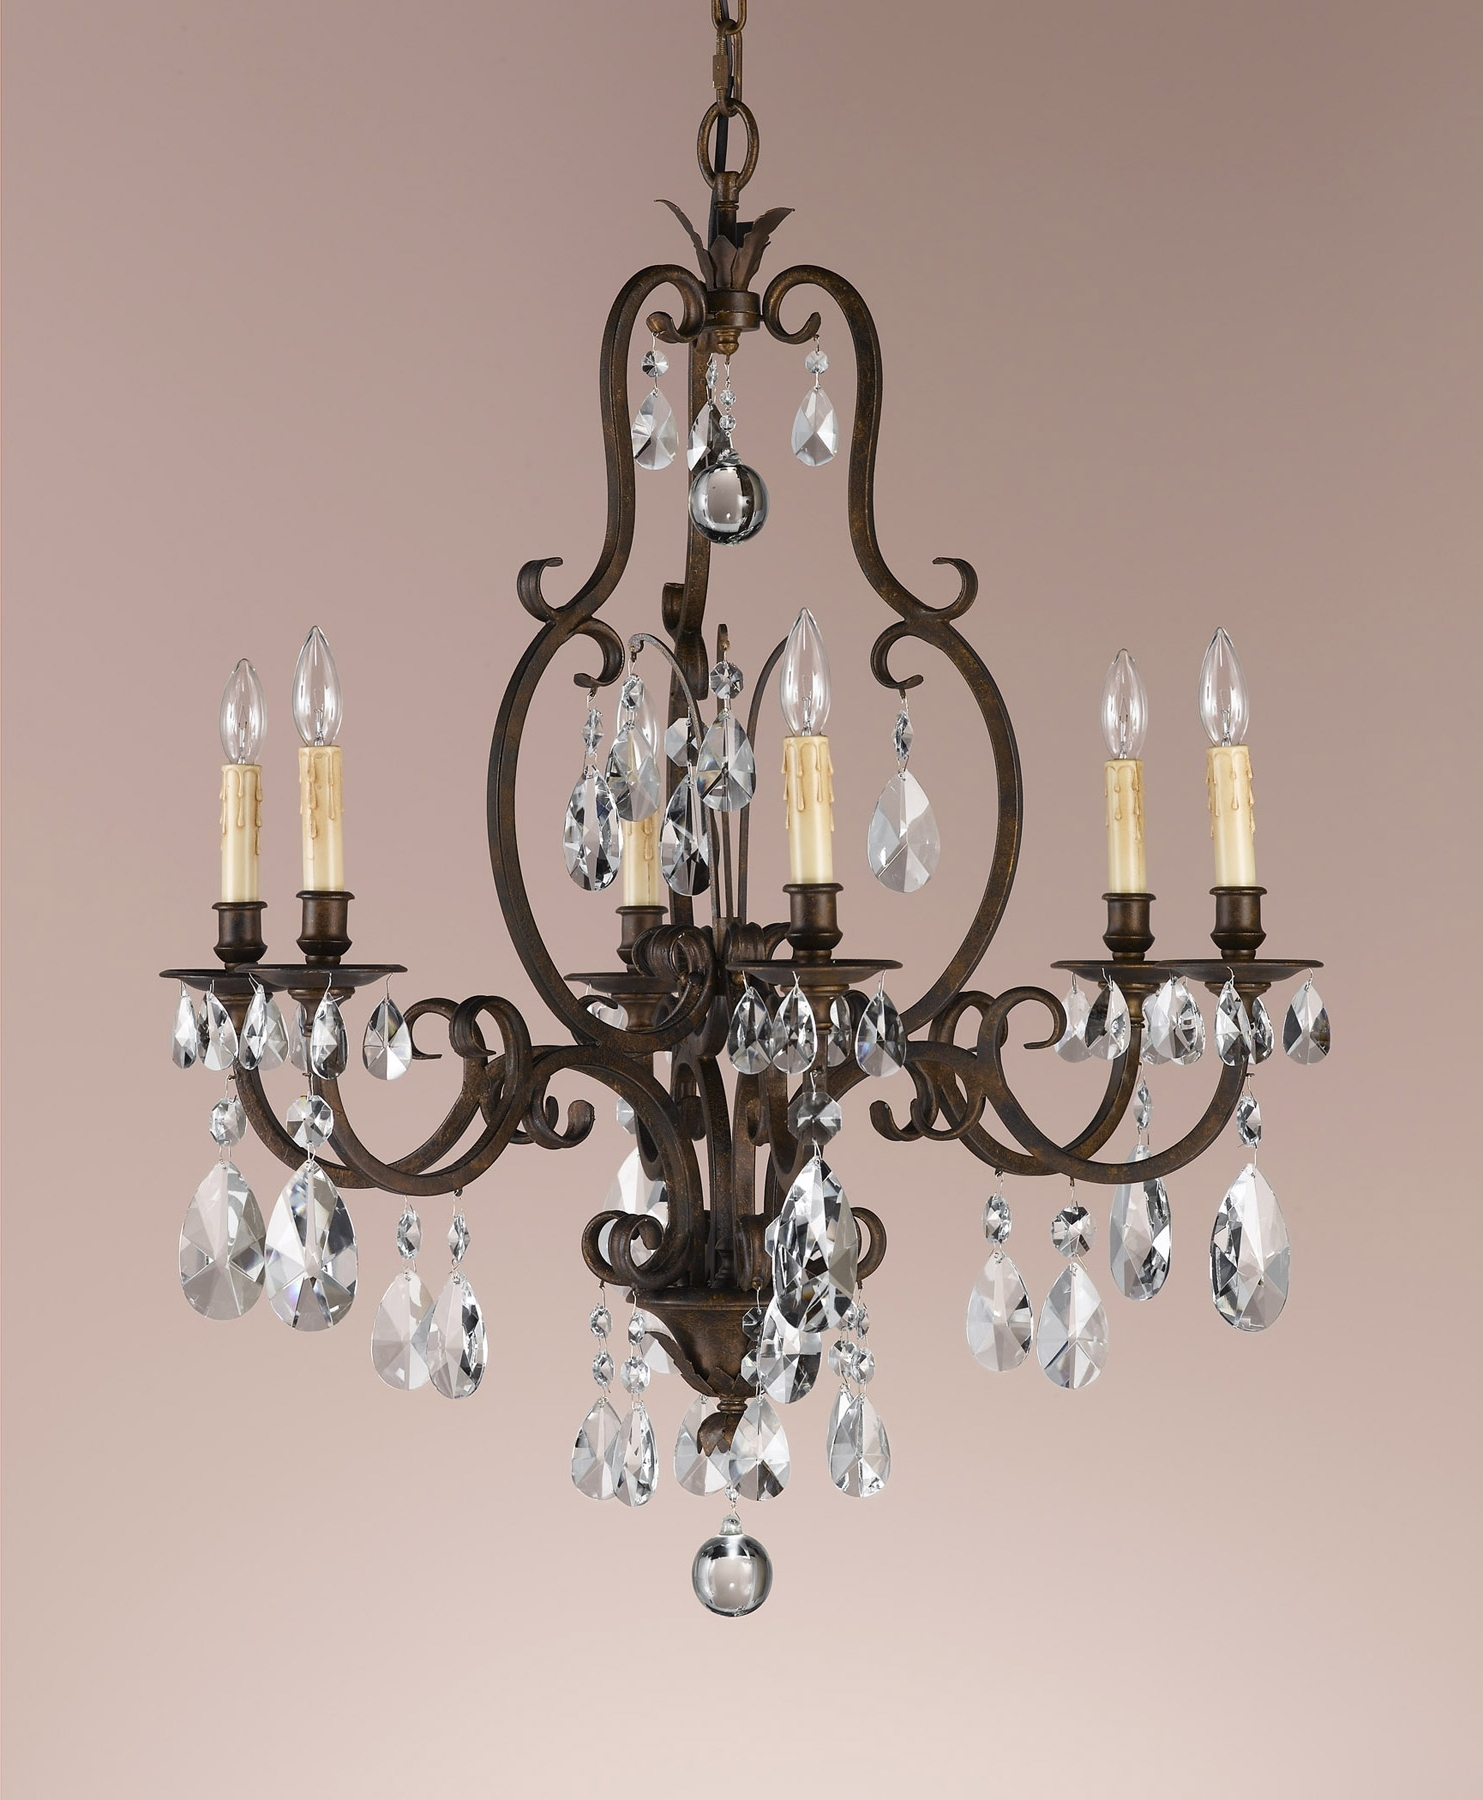 Famous Feiss F2228/6Ats Crystal Salon Maison Six Light Chandelier Throughout Feiss Chandeliers (View 4 of 20)